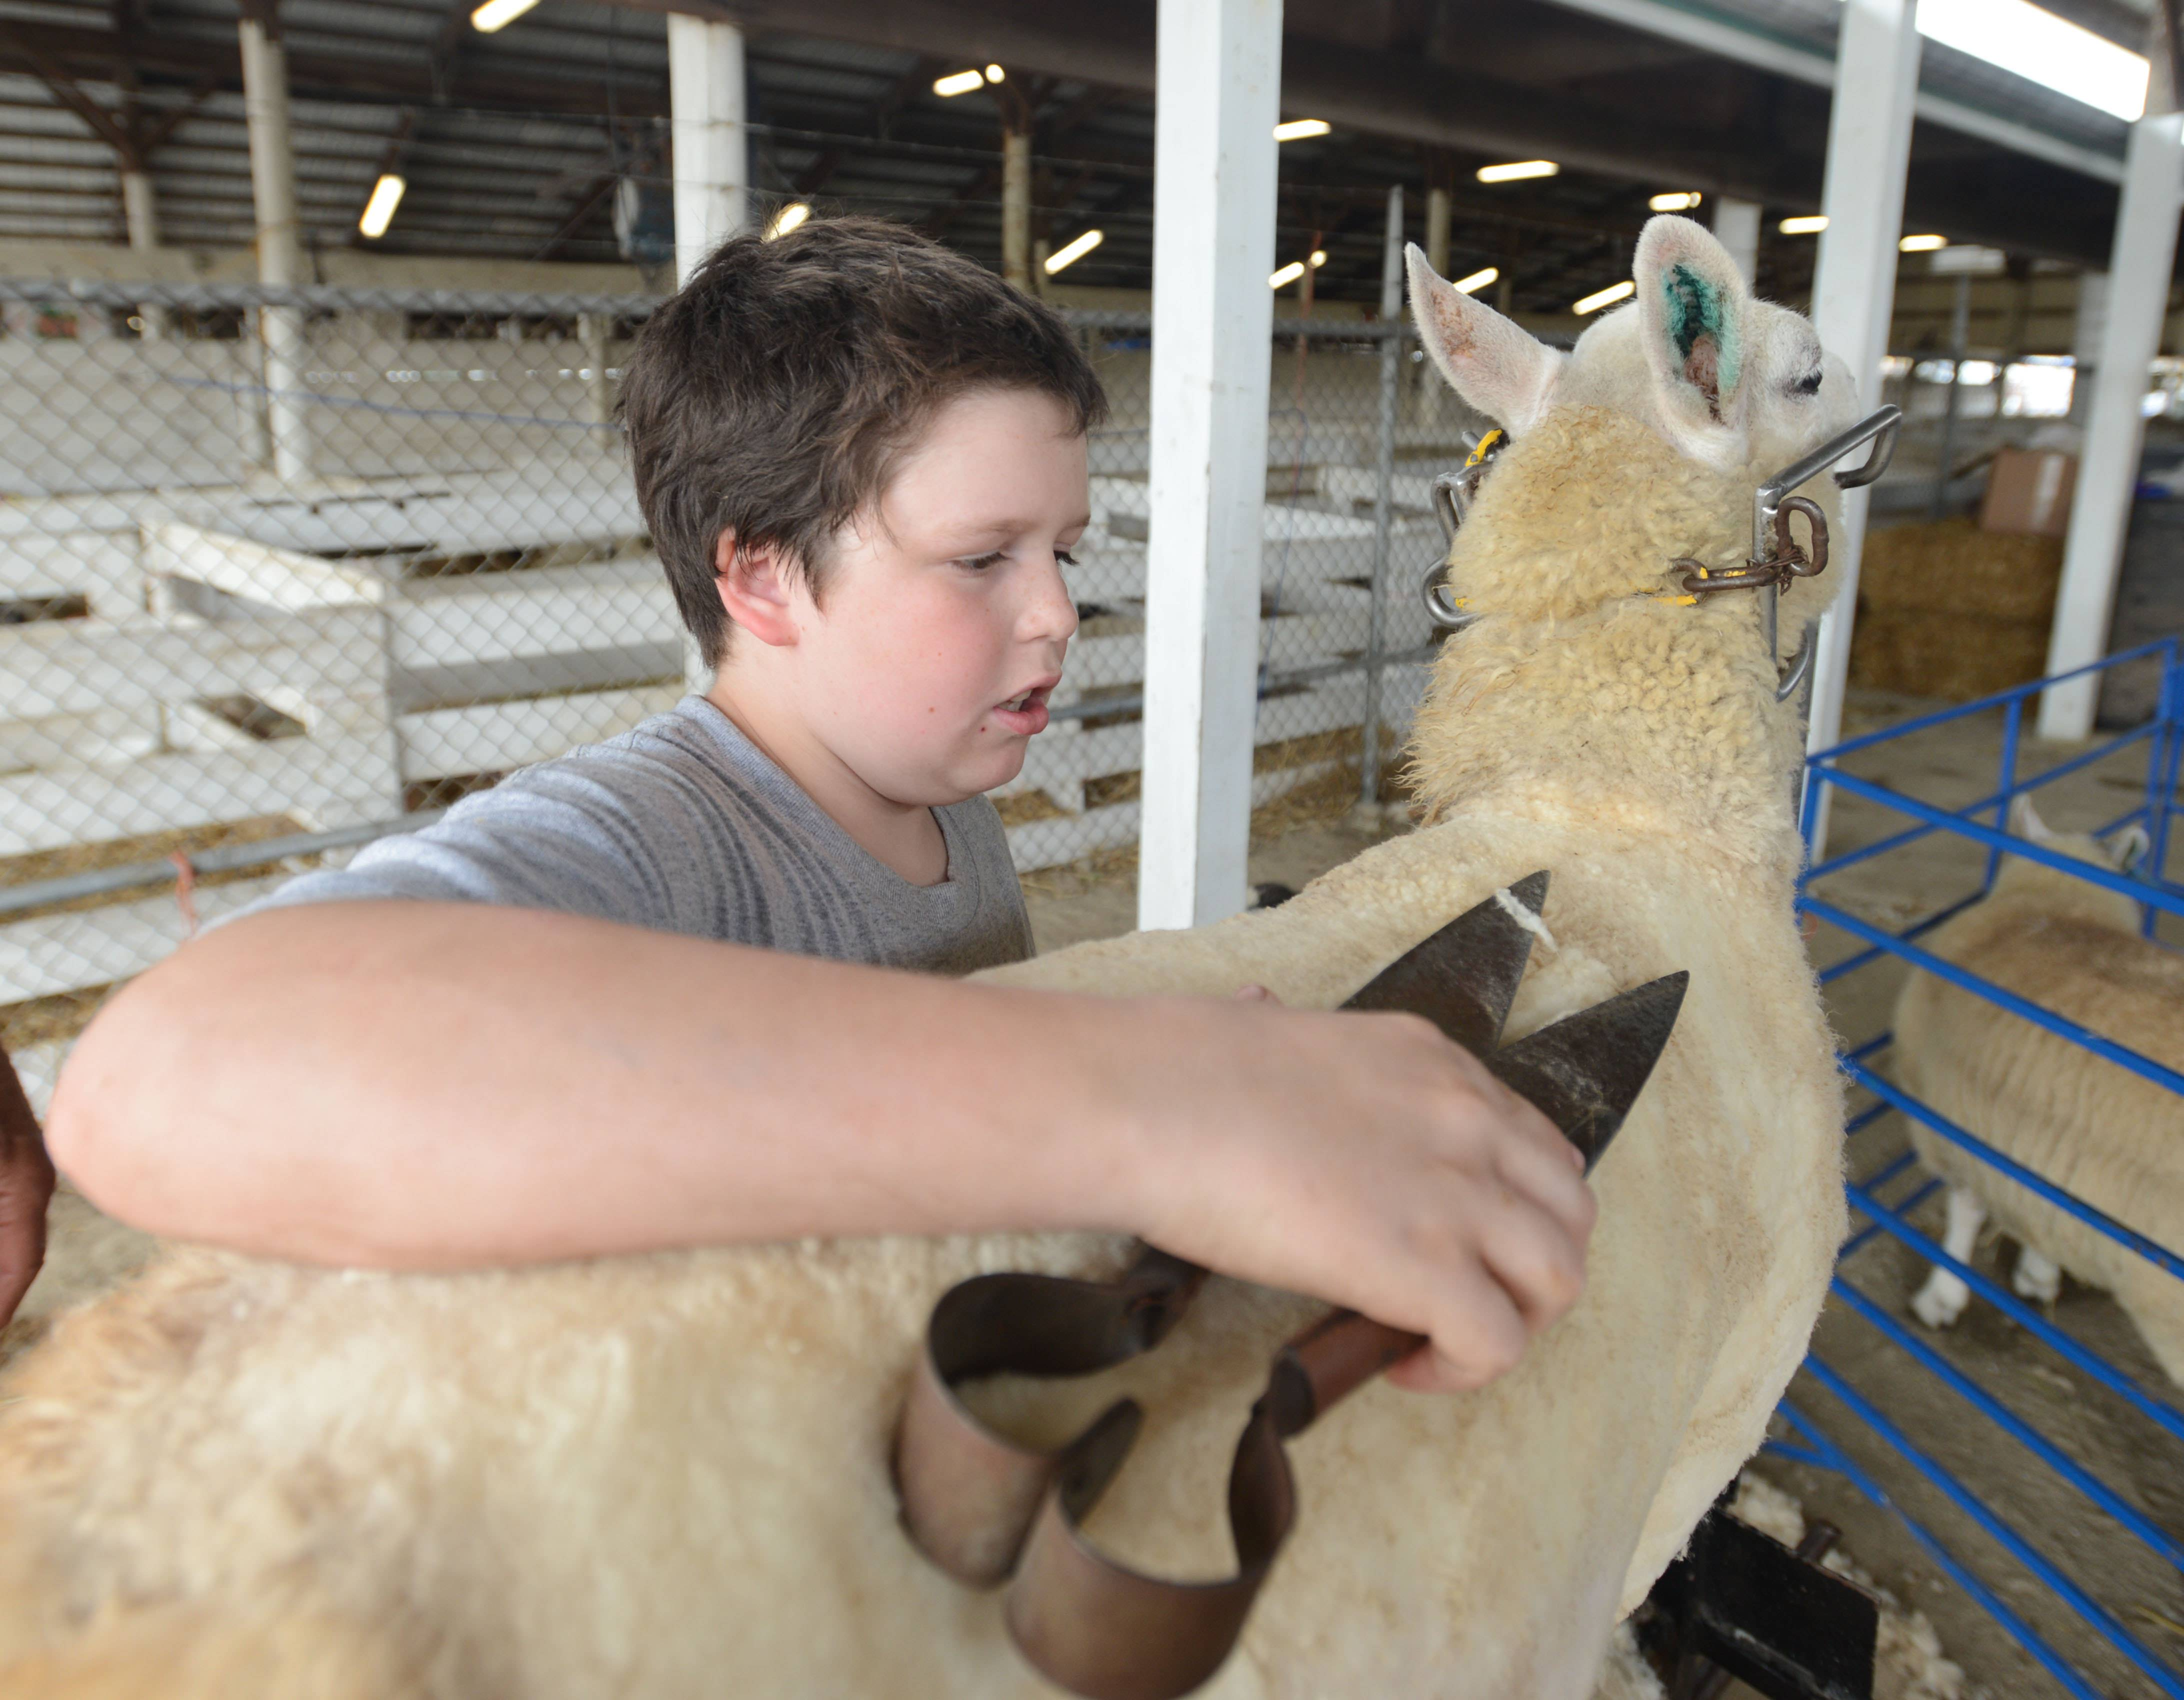 Preparations are under way for the DuPage County Fair, which opens Wednesday in Wheaton. Oli Baraclough,11, of Carol Stream shears a sheep. He was getting ready for the competition later in the week.